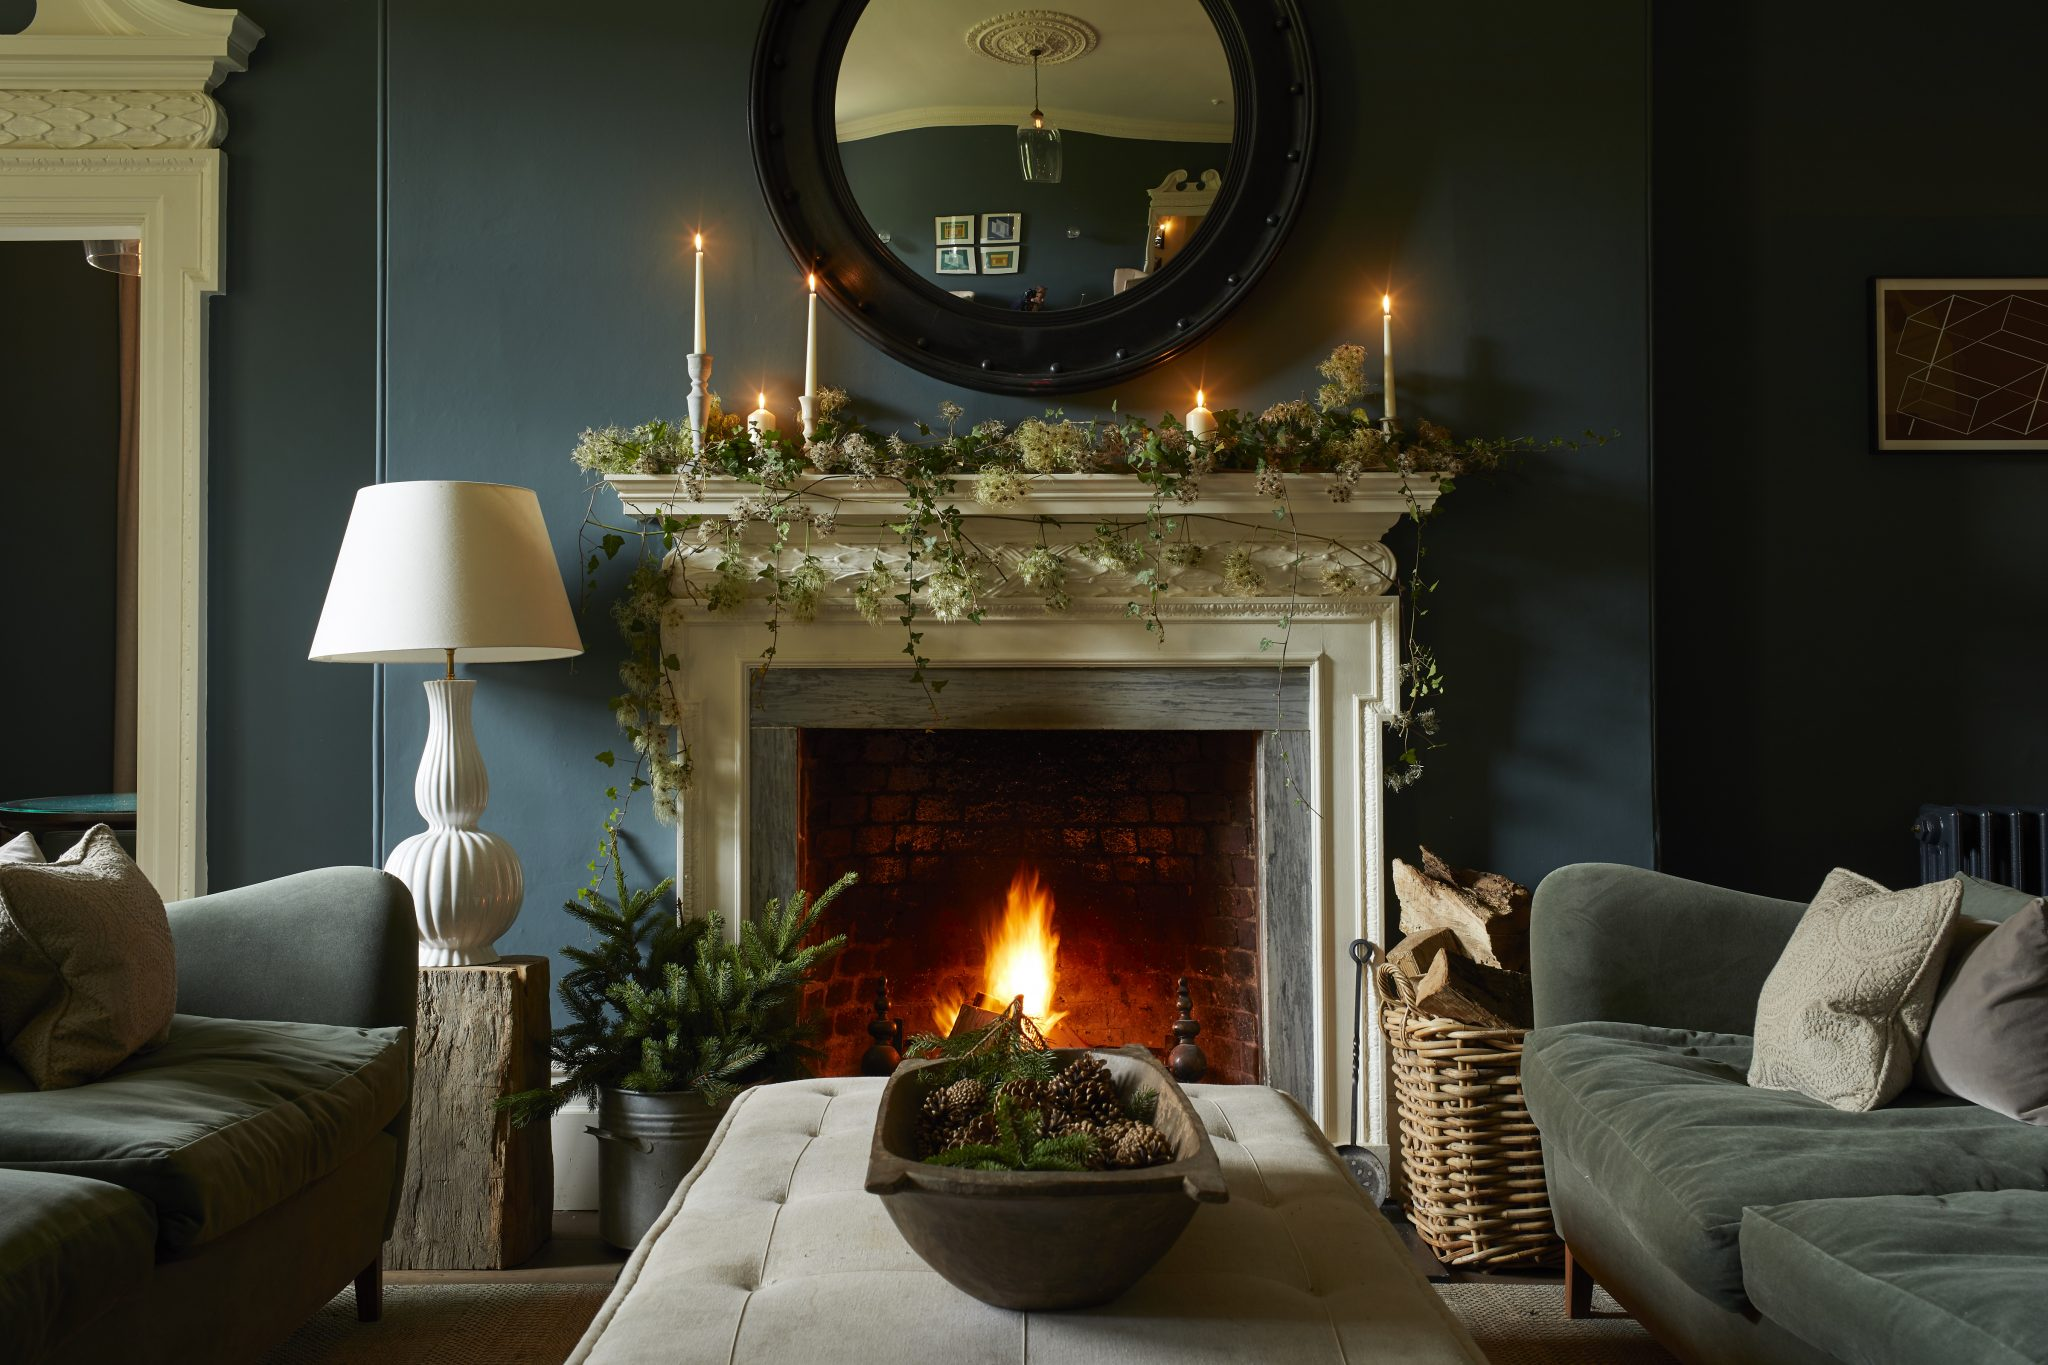 Christmas fireplace at The Rectory Hotel